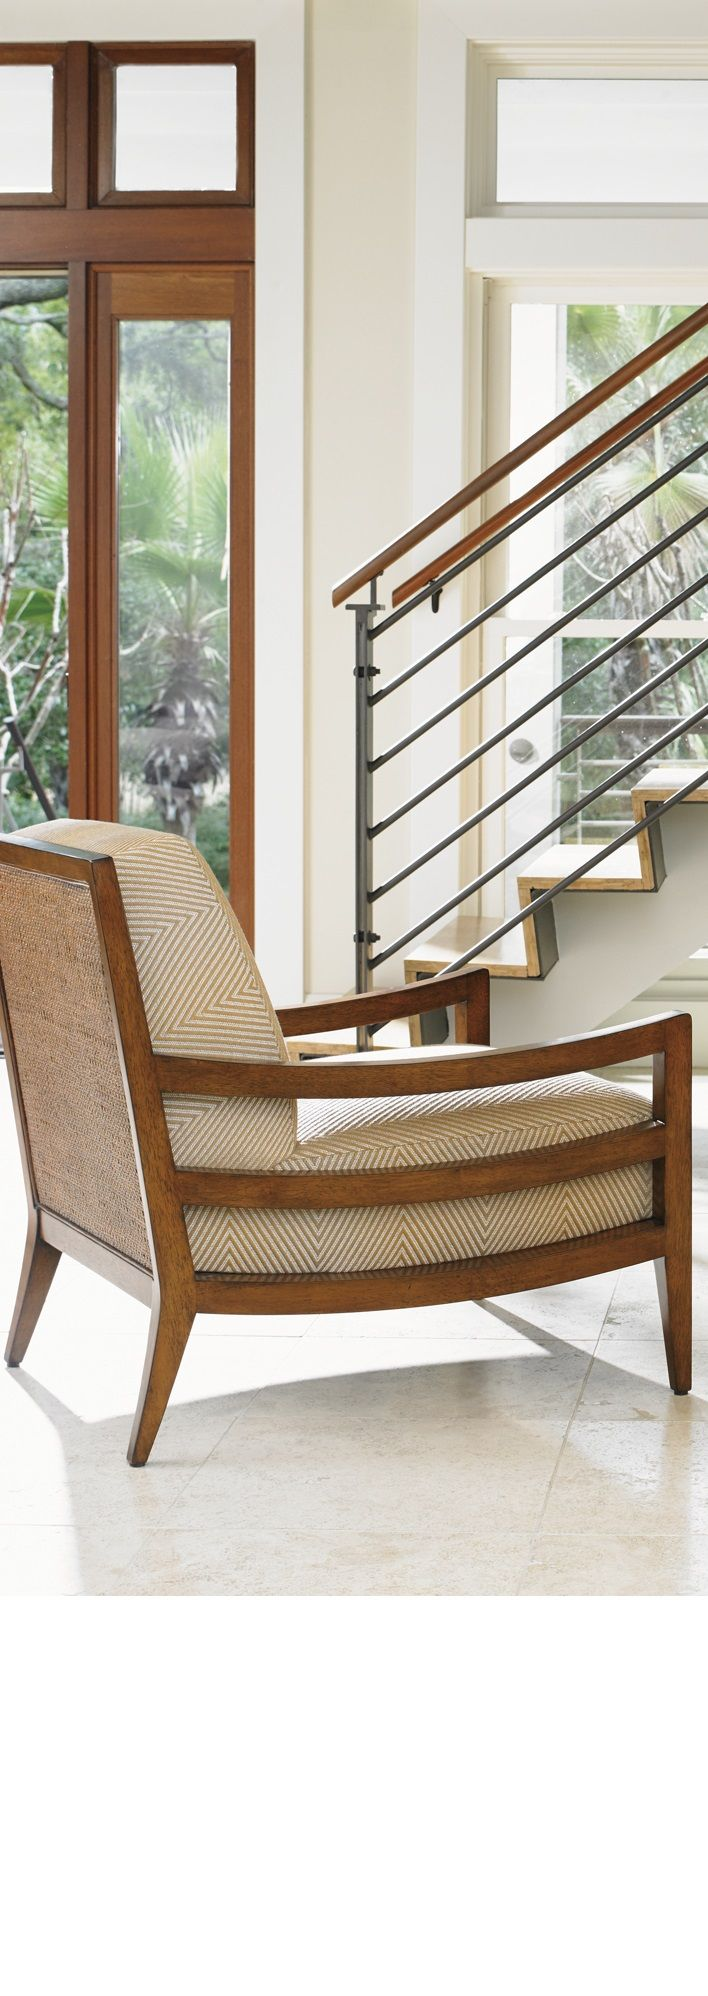 luxury lounge chairs. \ Luxury Lounge Chairs Y